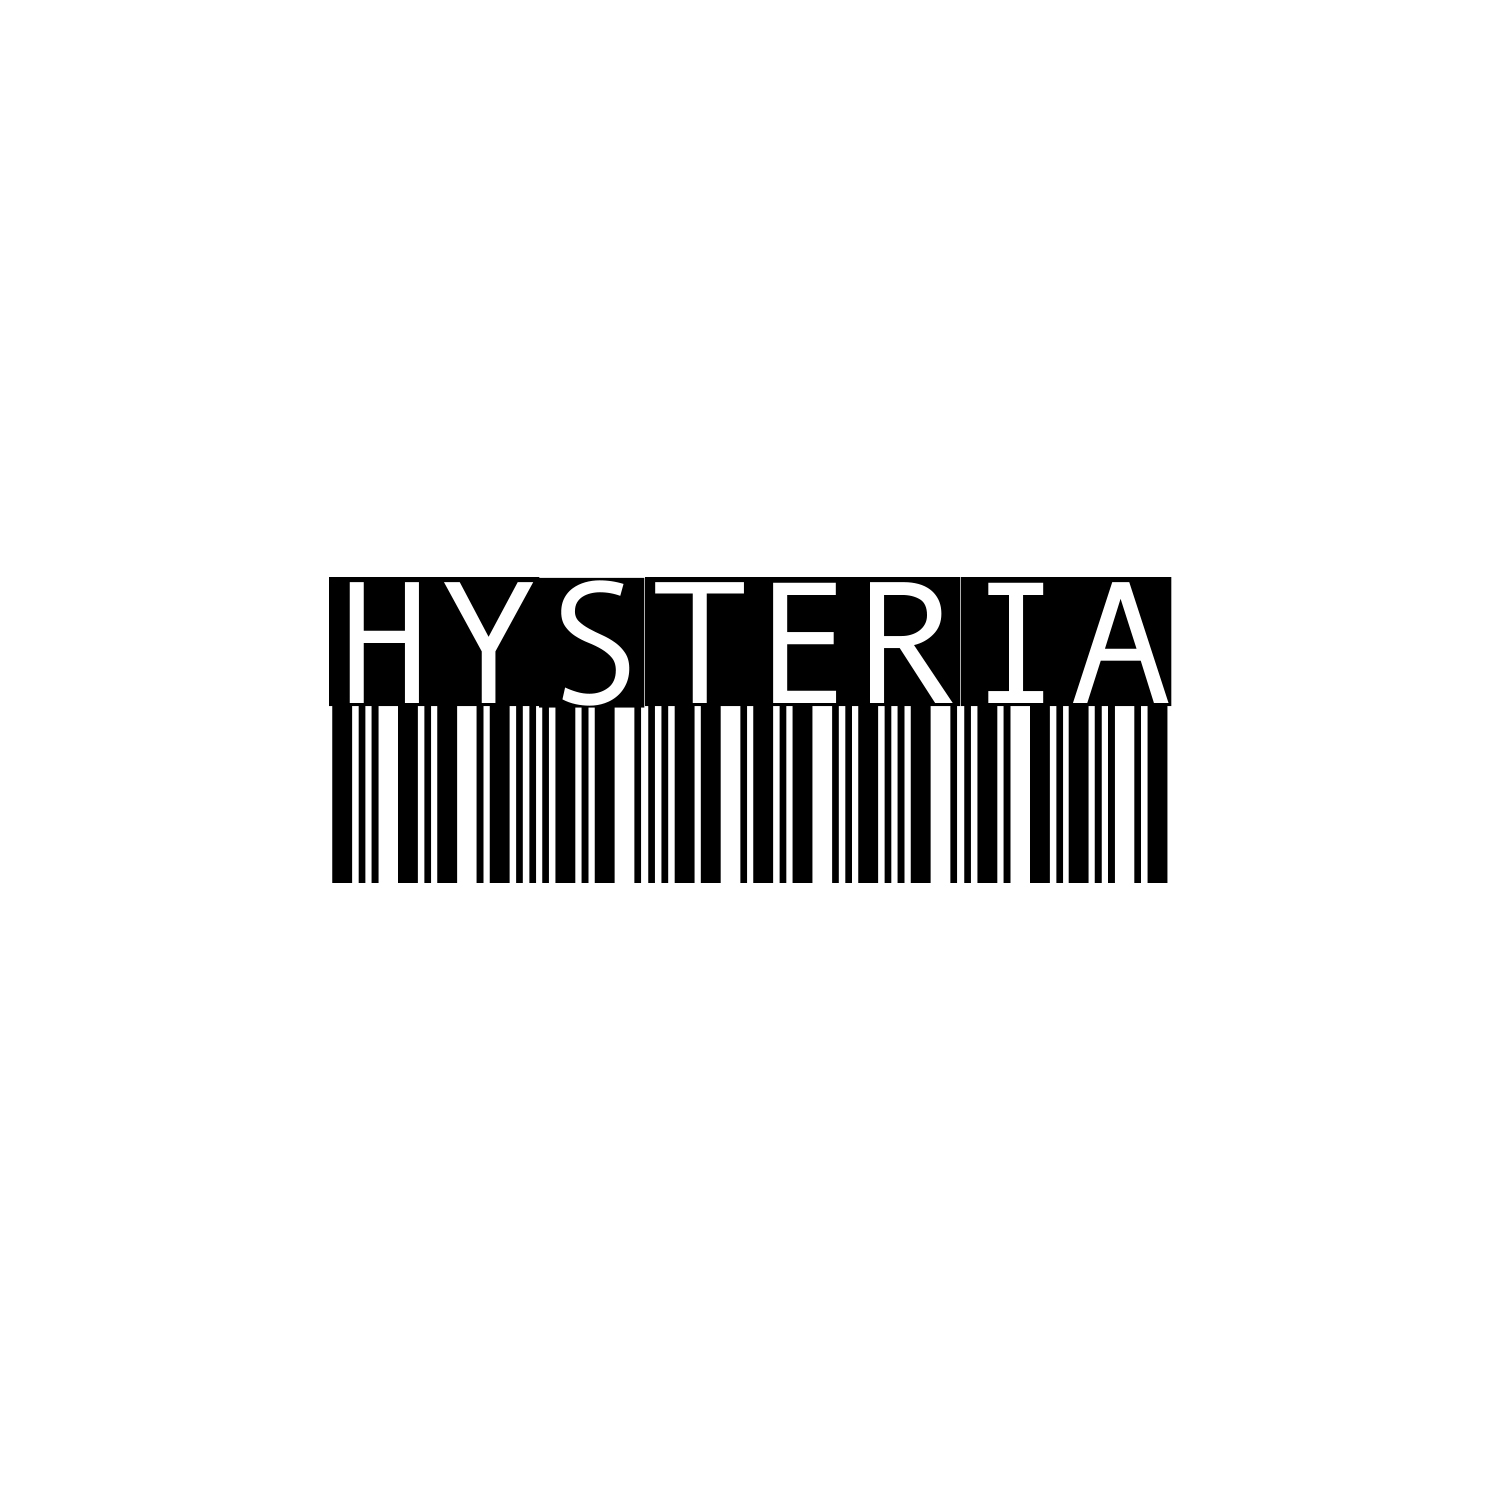 Hysteria Visuals